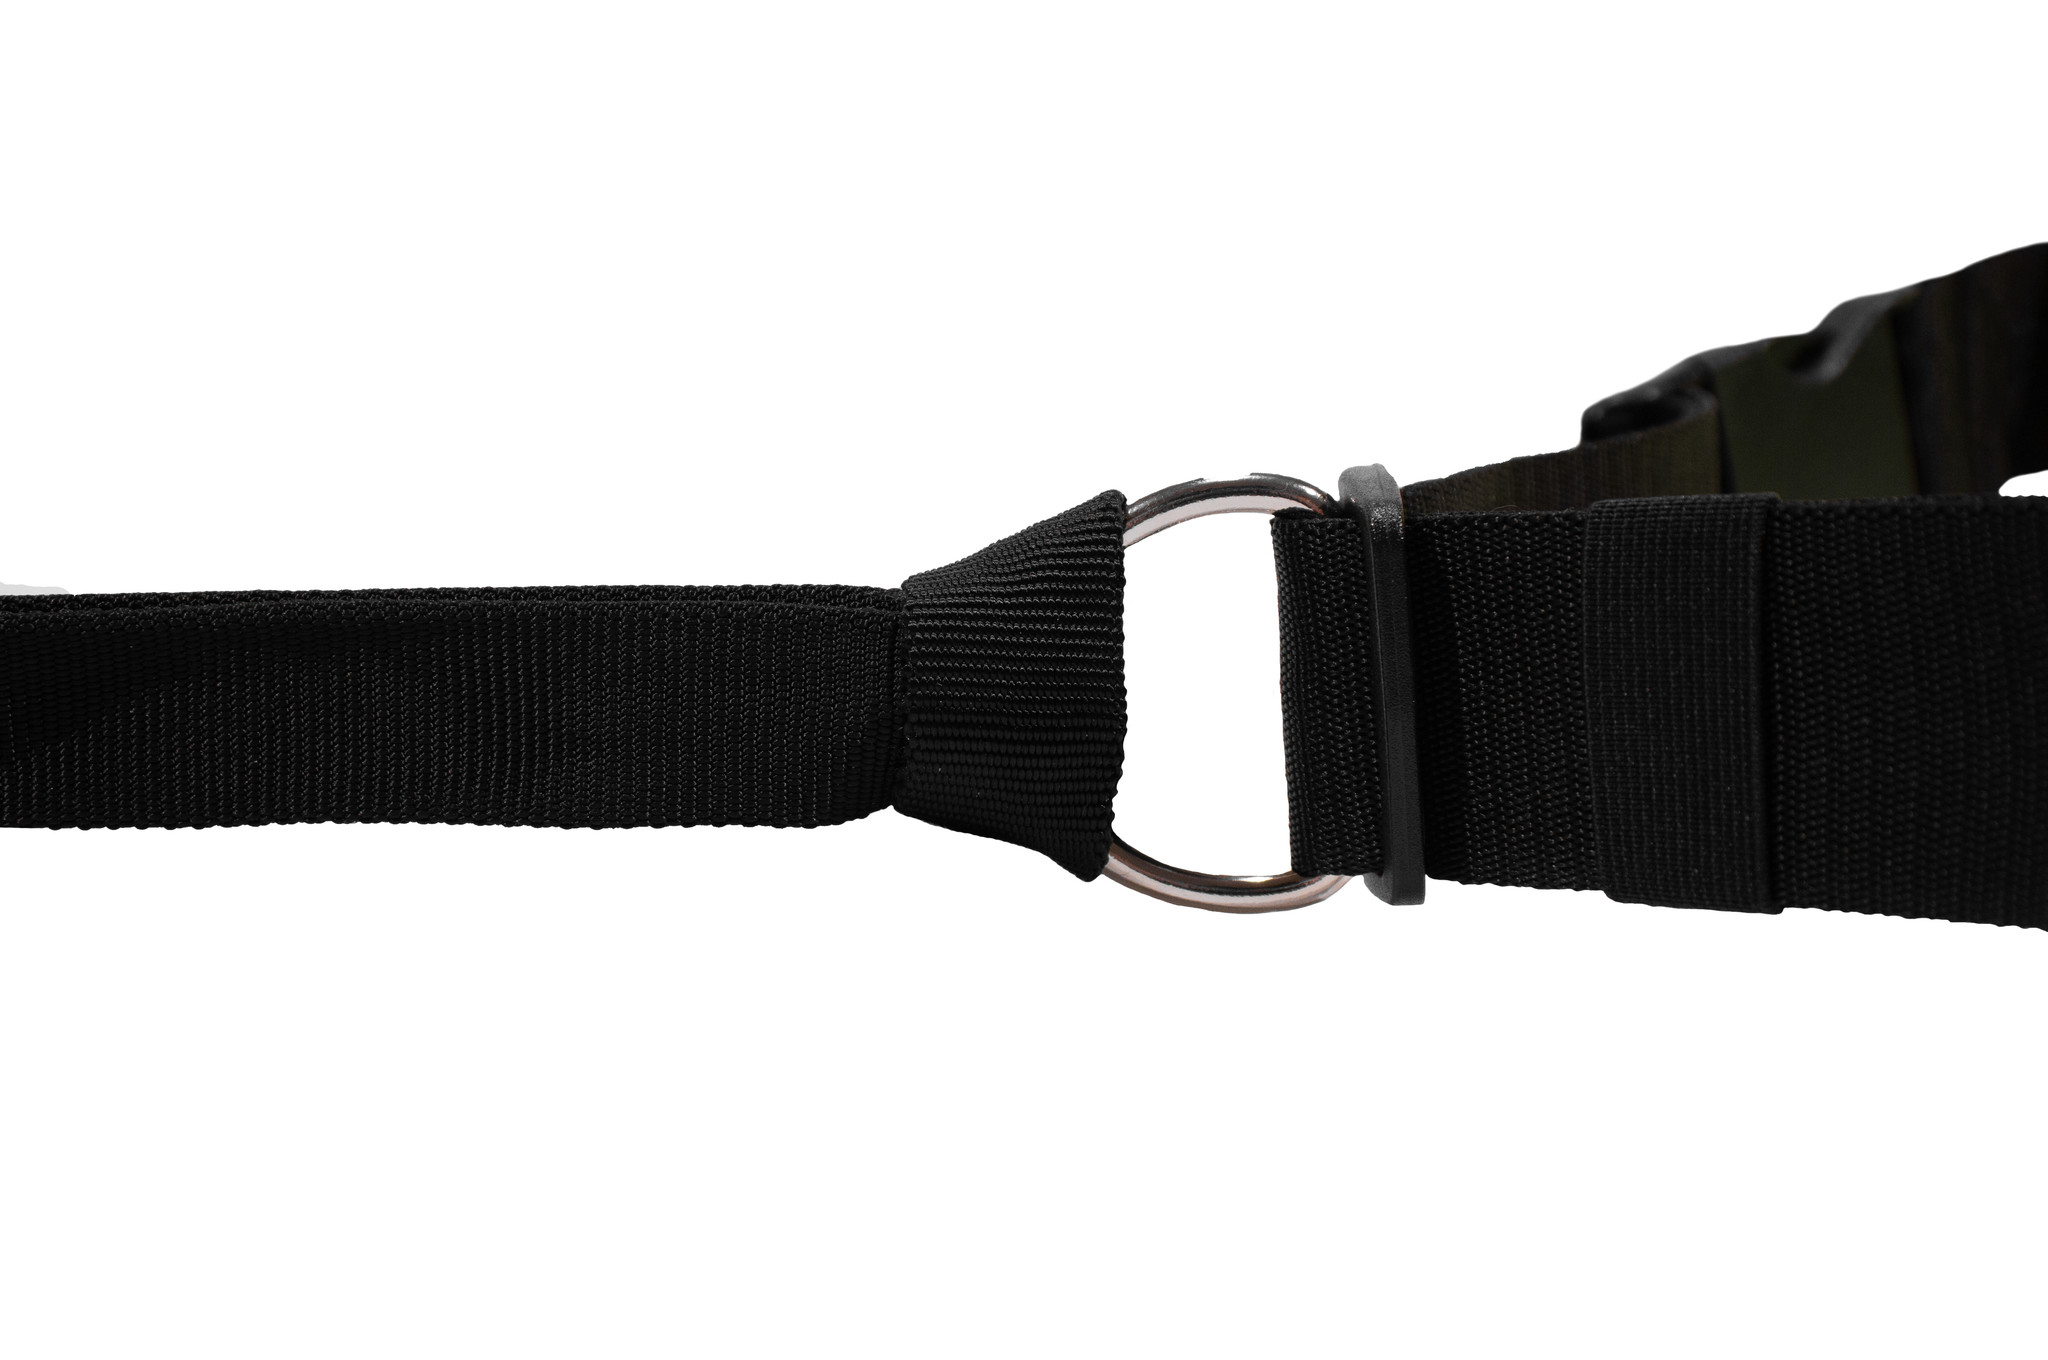 LasaLine LasaLine Hands free Dog Leash with integrated Bungee - black